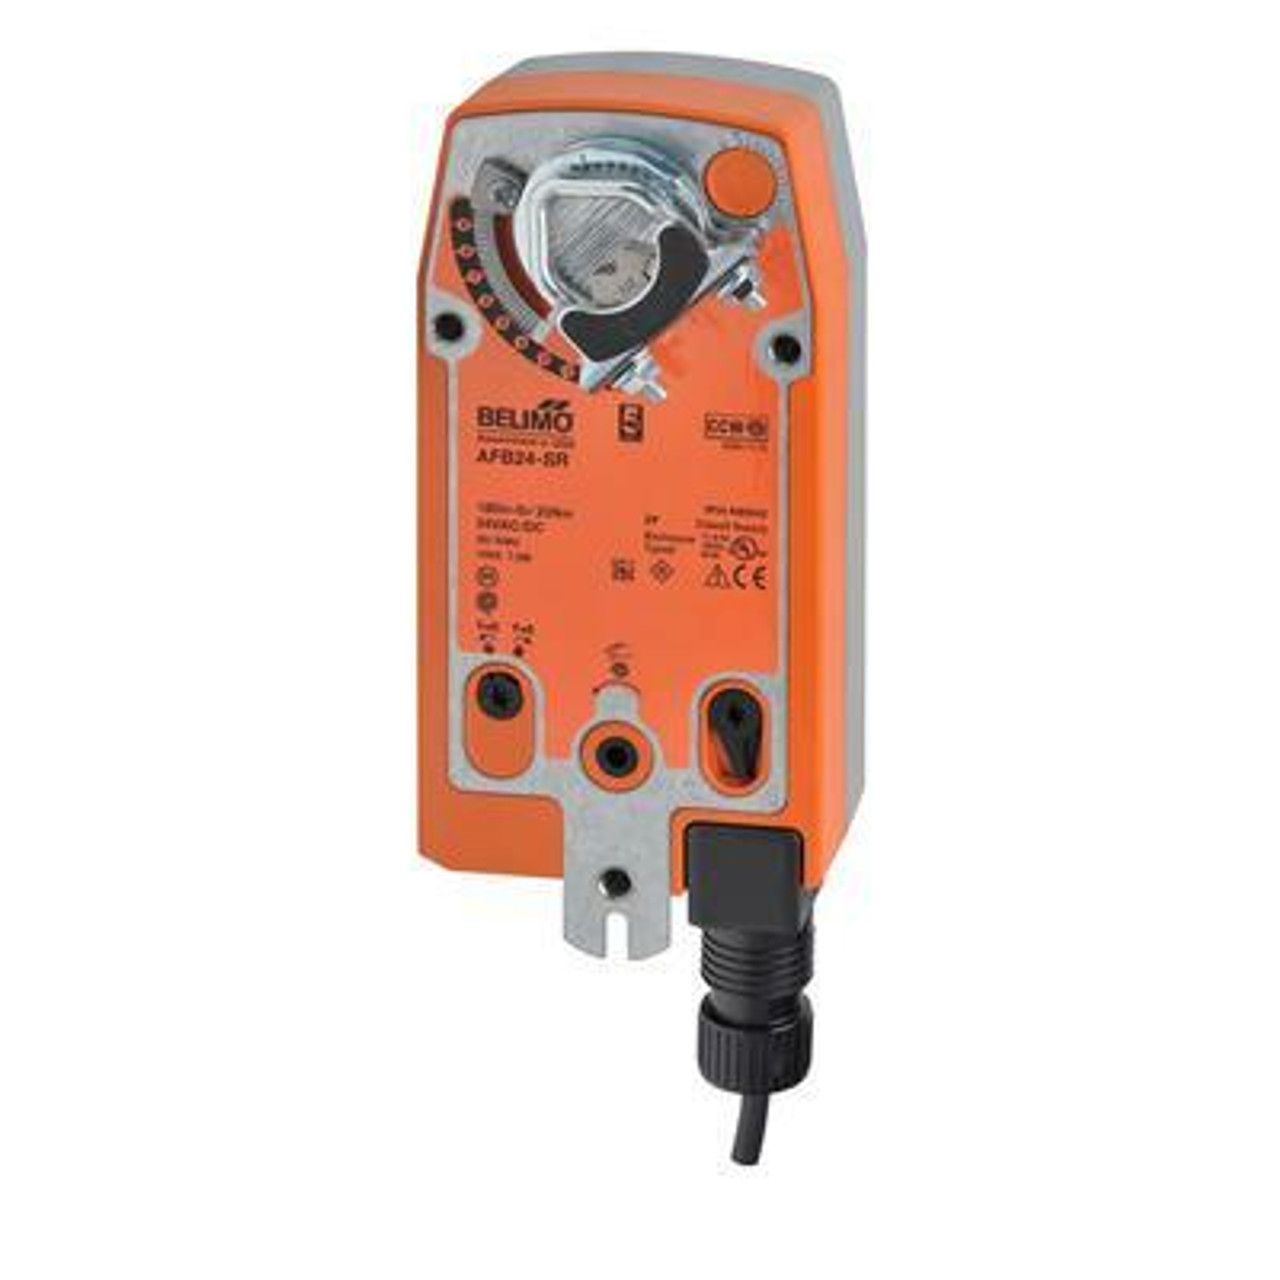 Belimo AFB24-SR - Damper Actuator Modulating, Spring Return, 24 VAC/DC, for 2 to 10 VDC or 4 to 20 mA Control Signal